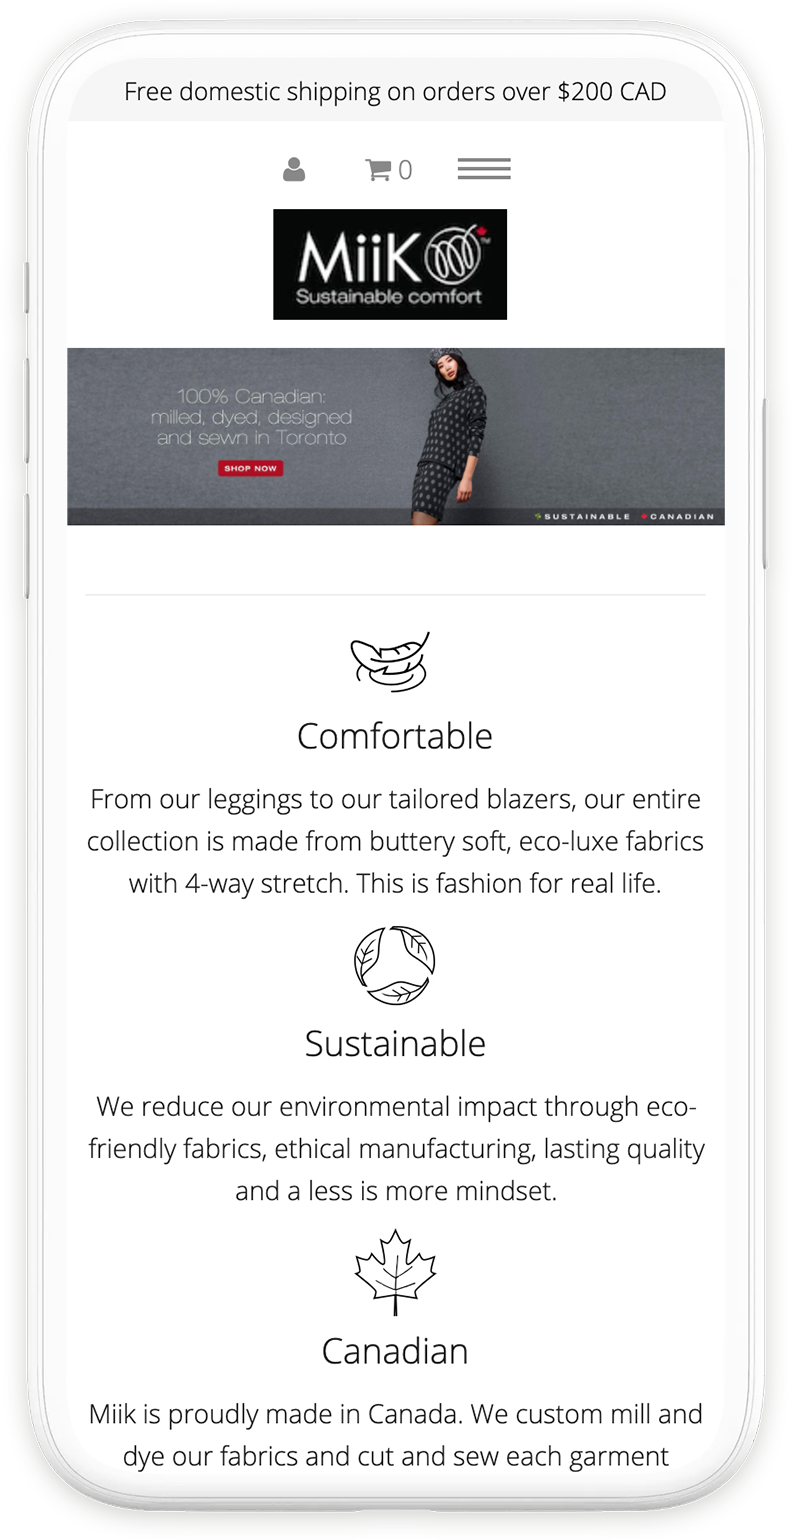 Previous homepage design viewed on an iPhone